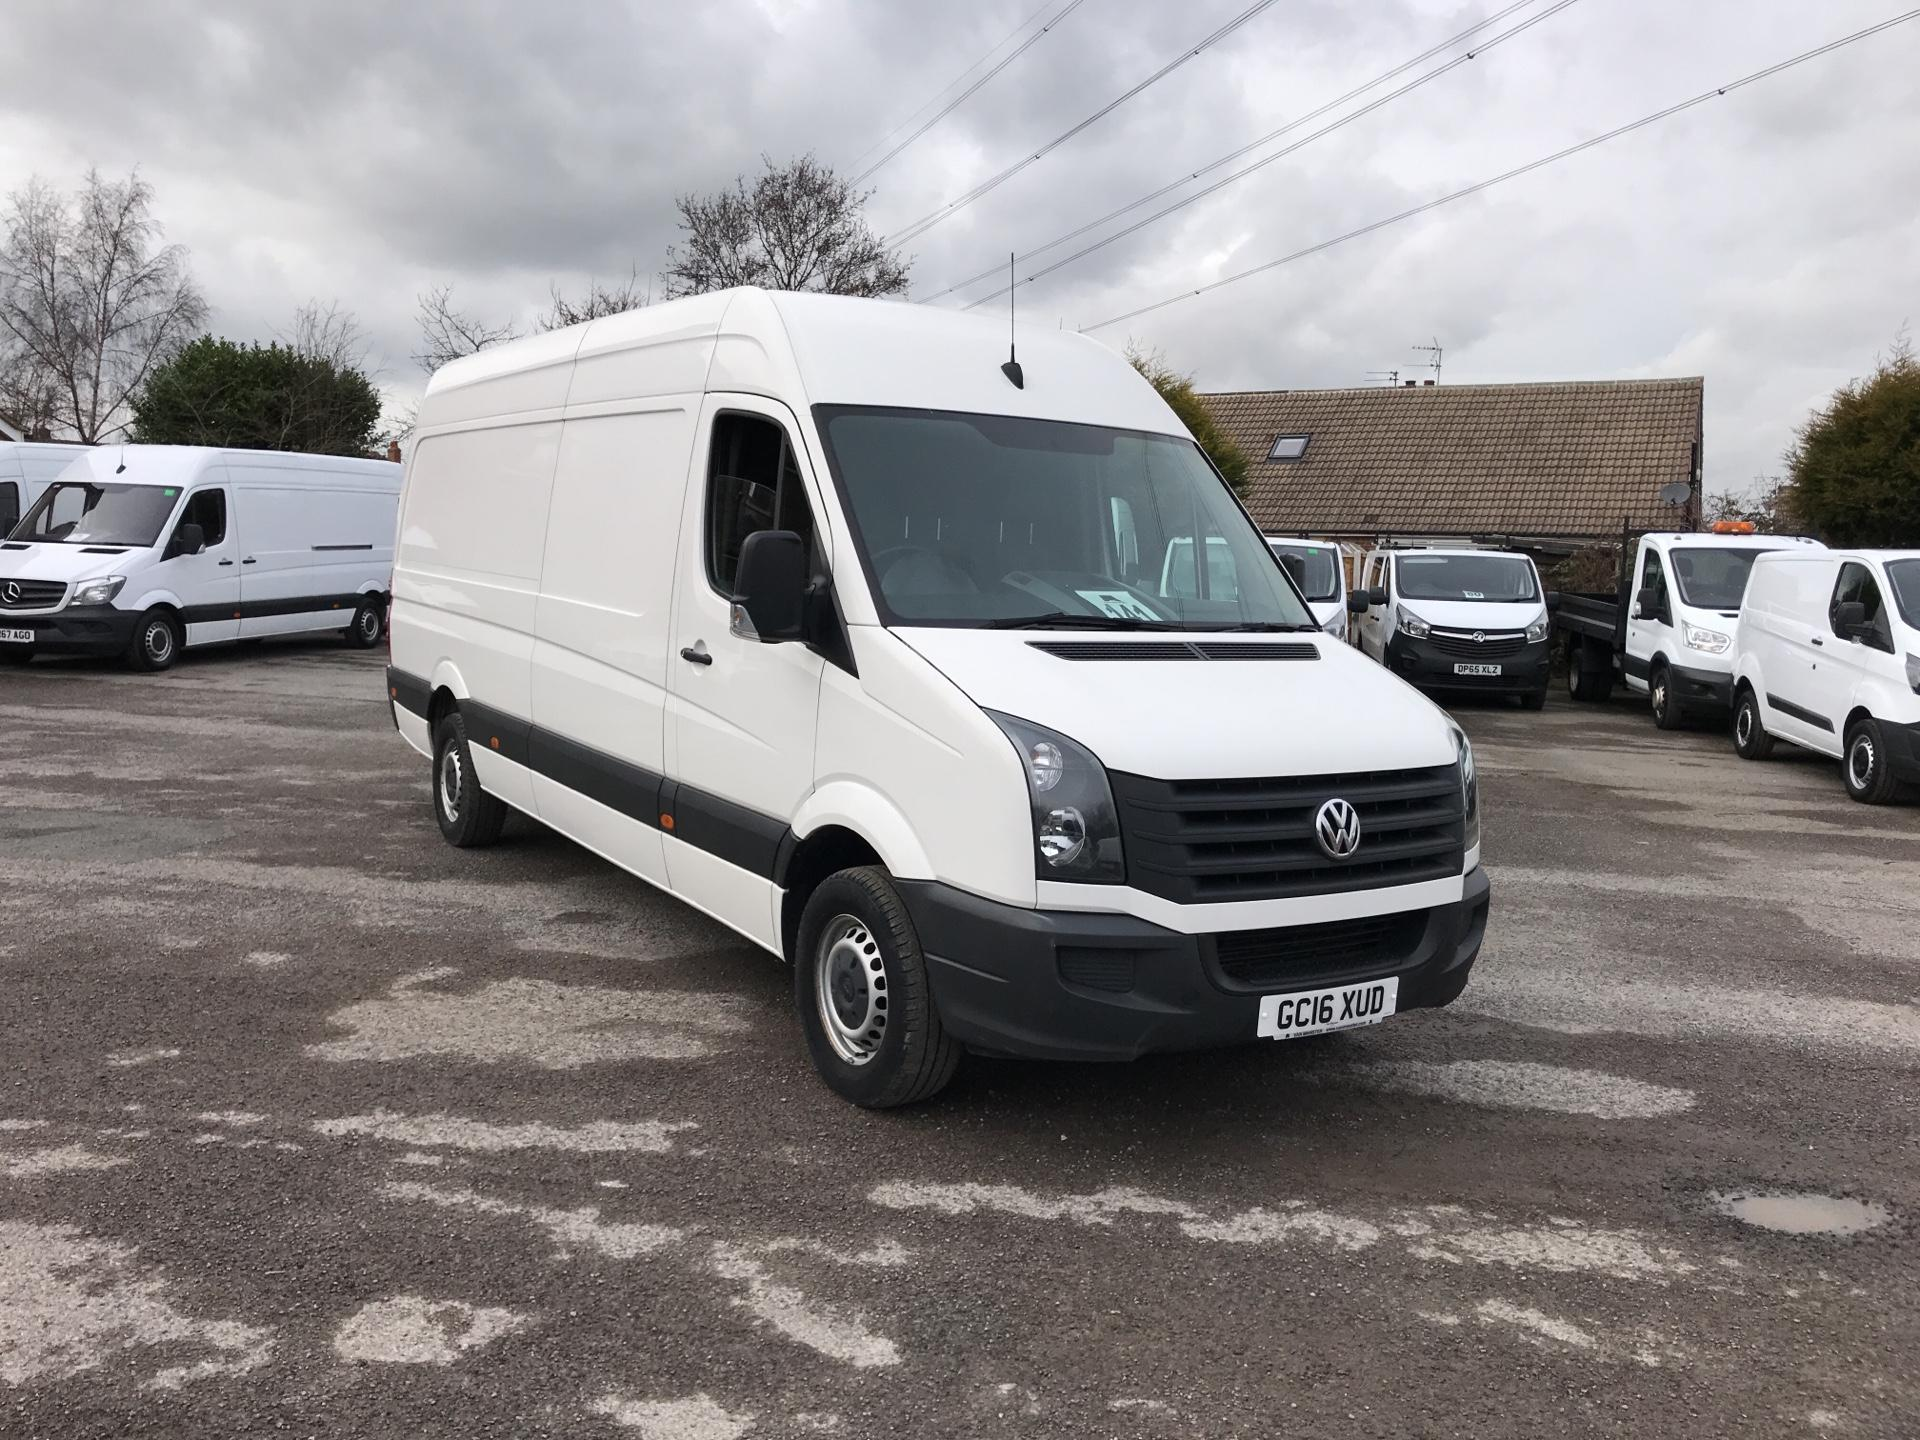 2016 Volkswagen Crafter  CR35 LWB 2.0 TDI 136PS HIGH ROOF EURO 5 (GC16XUD)